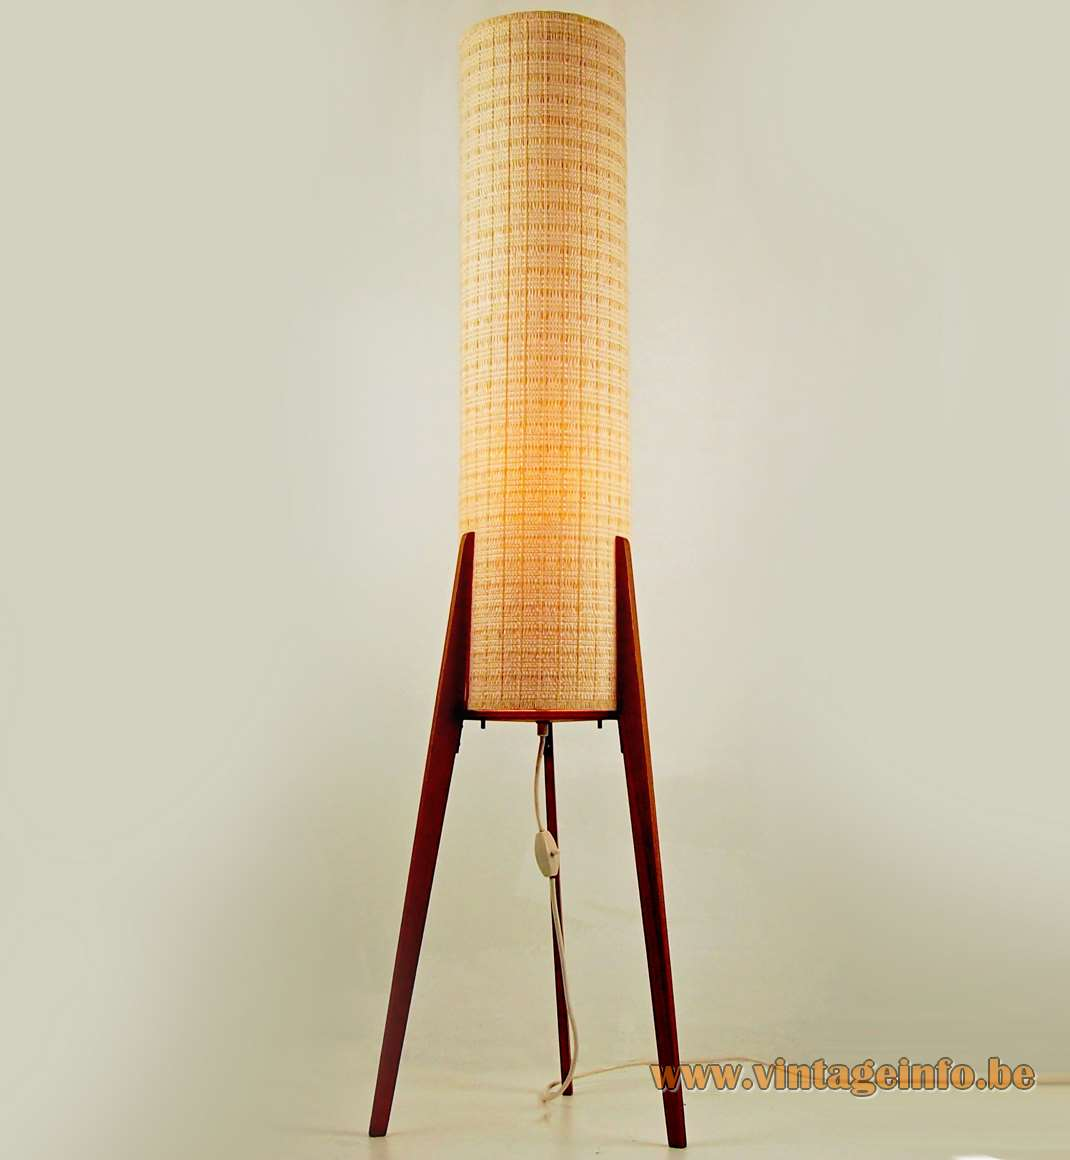 Leclaire & Schäfer trypod rocket floor lamp pine wood legs fabric tubular lampshade E27 socket Germany